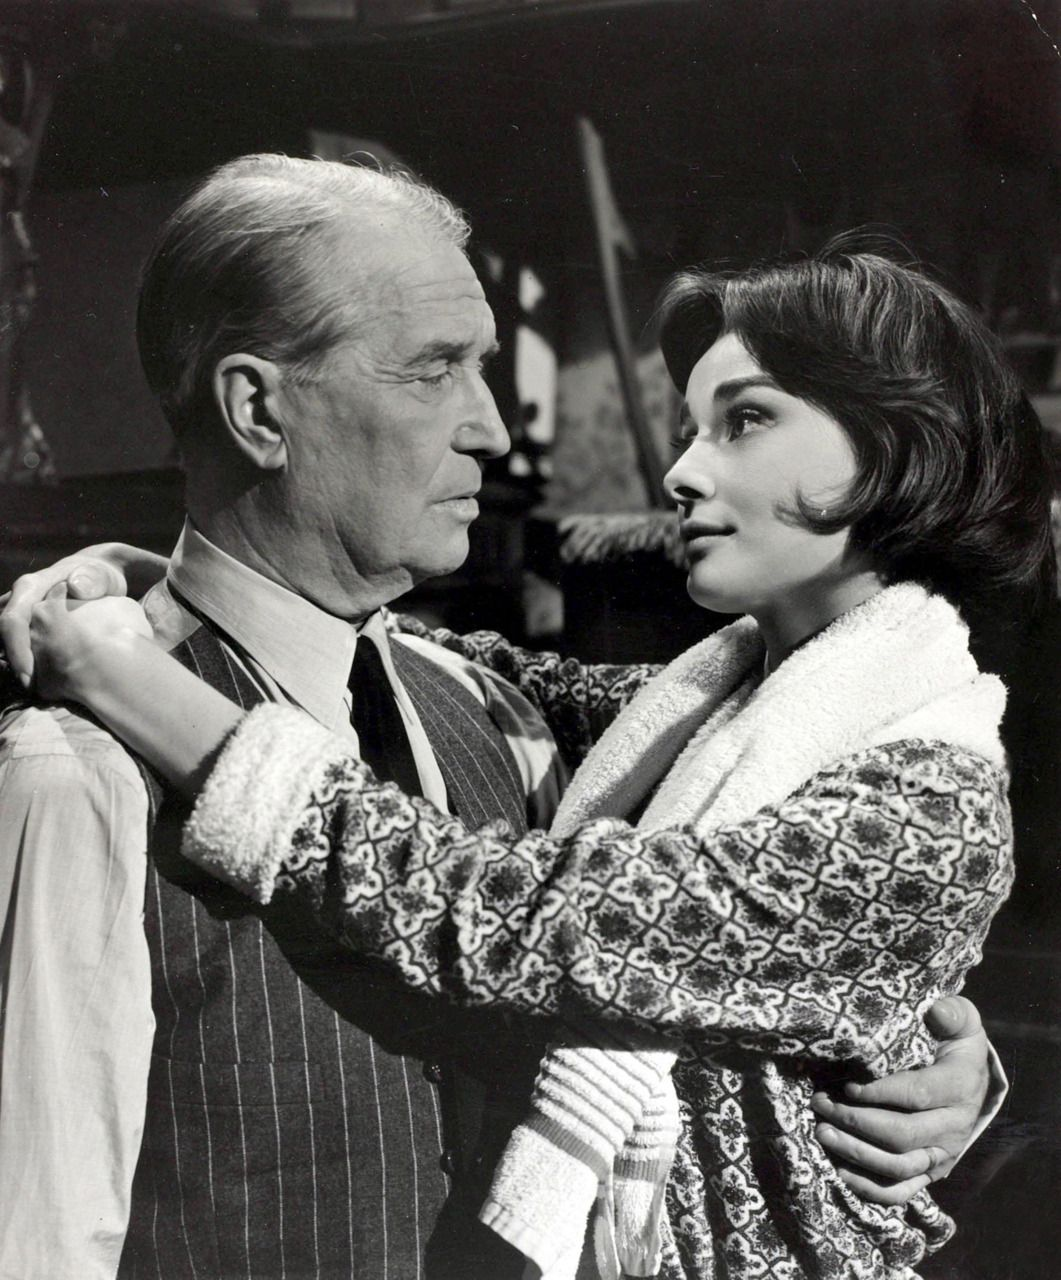 Audrey Hepburn with Maurice Chevalier on the set of Love in the afternoon 1957